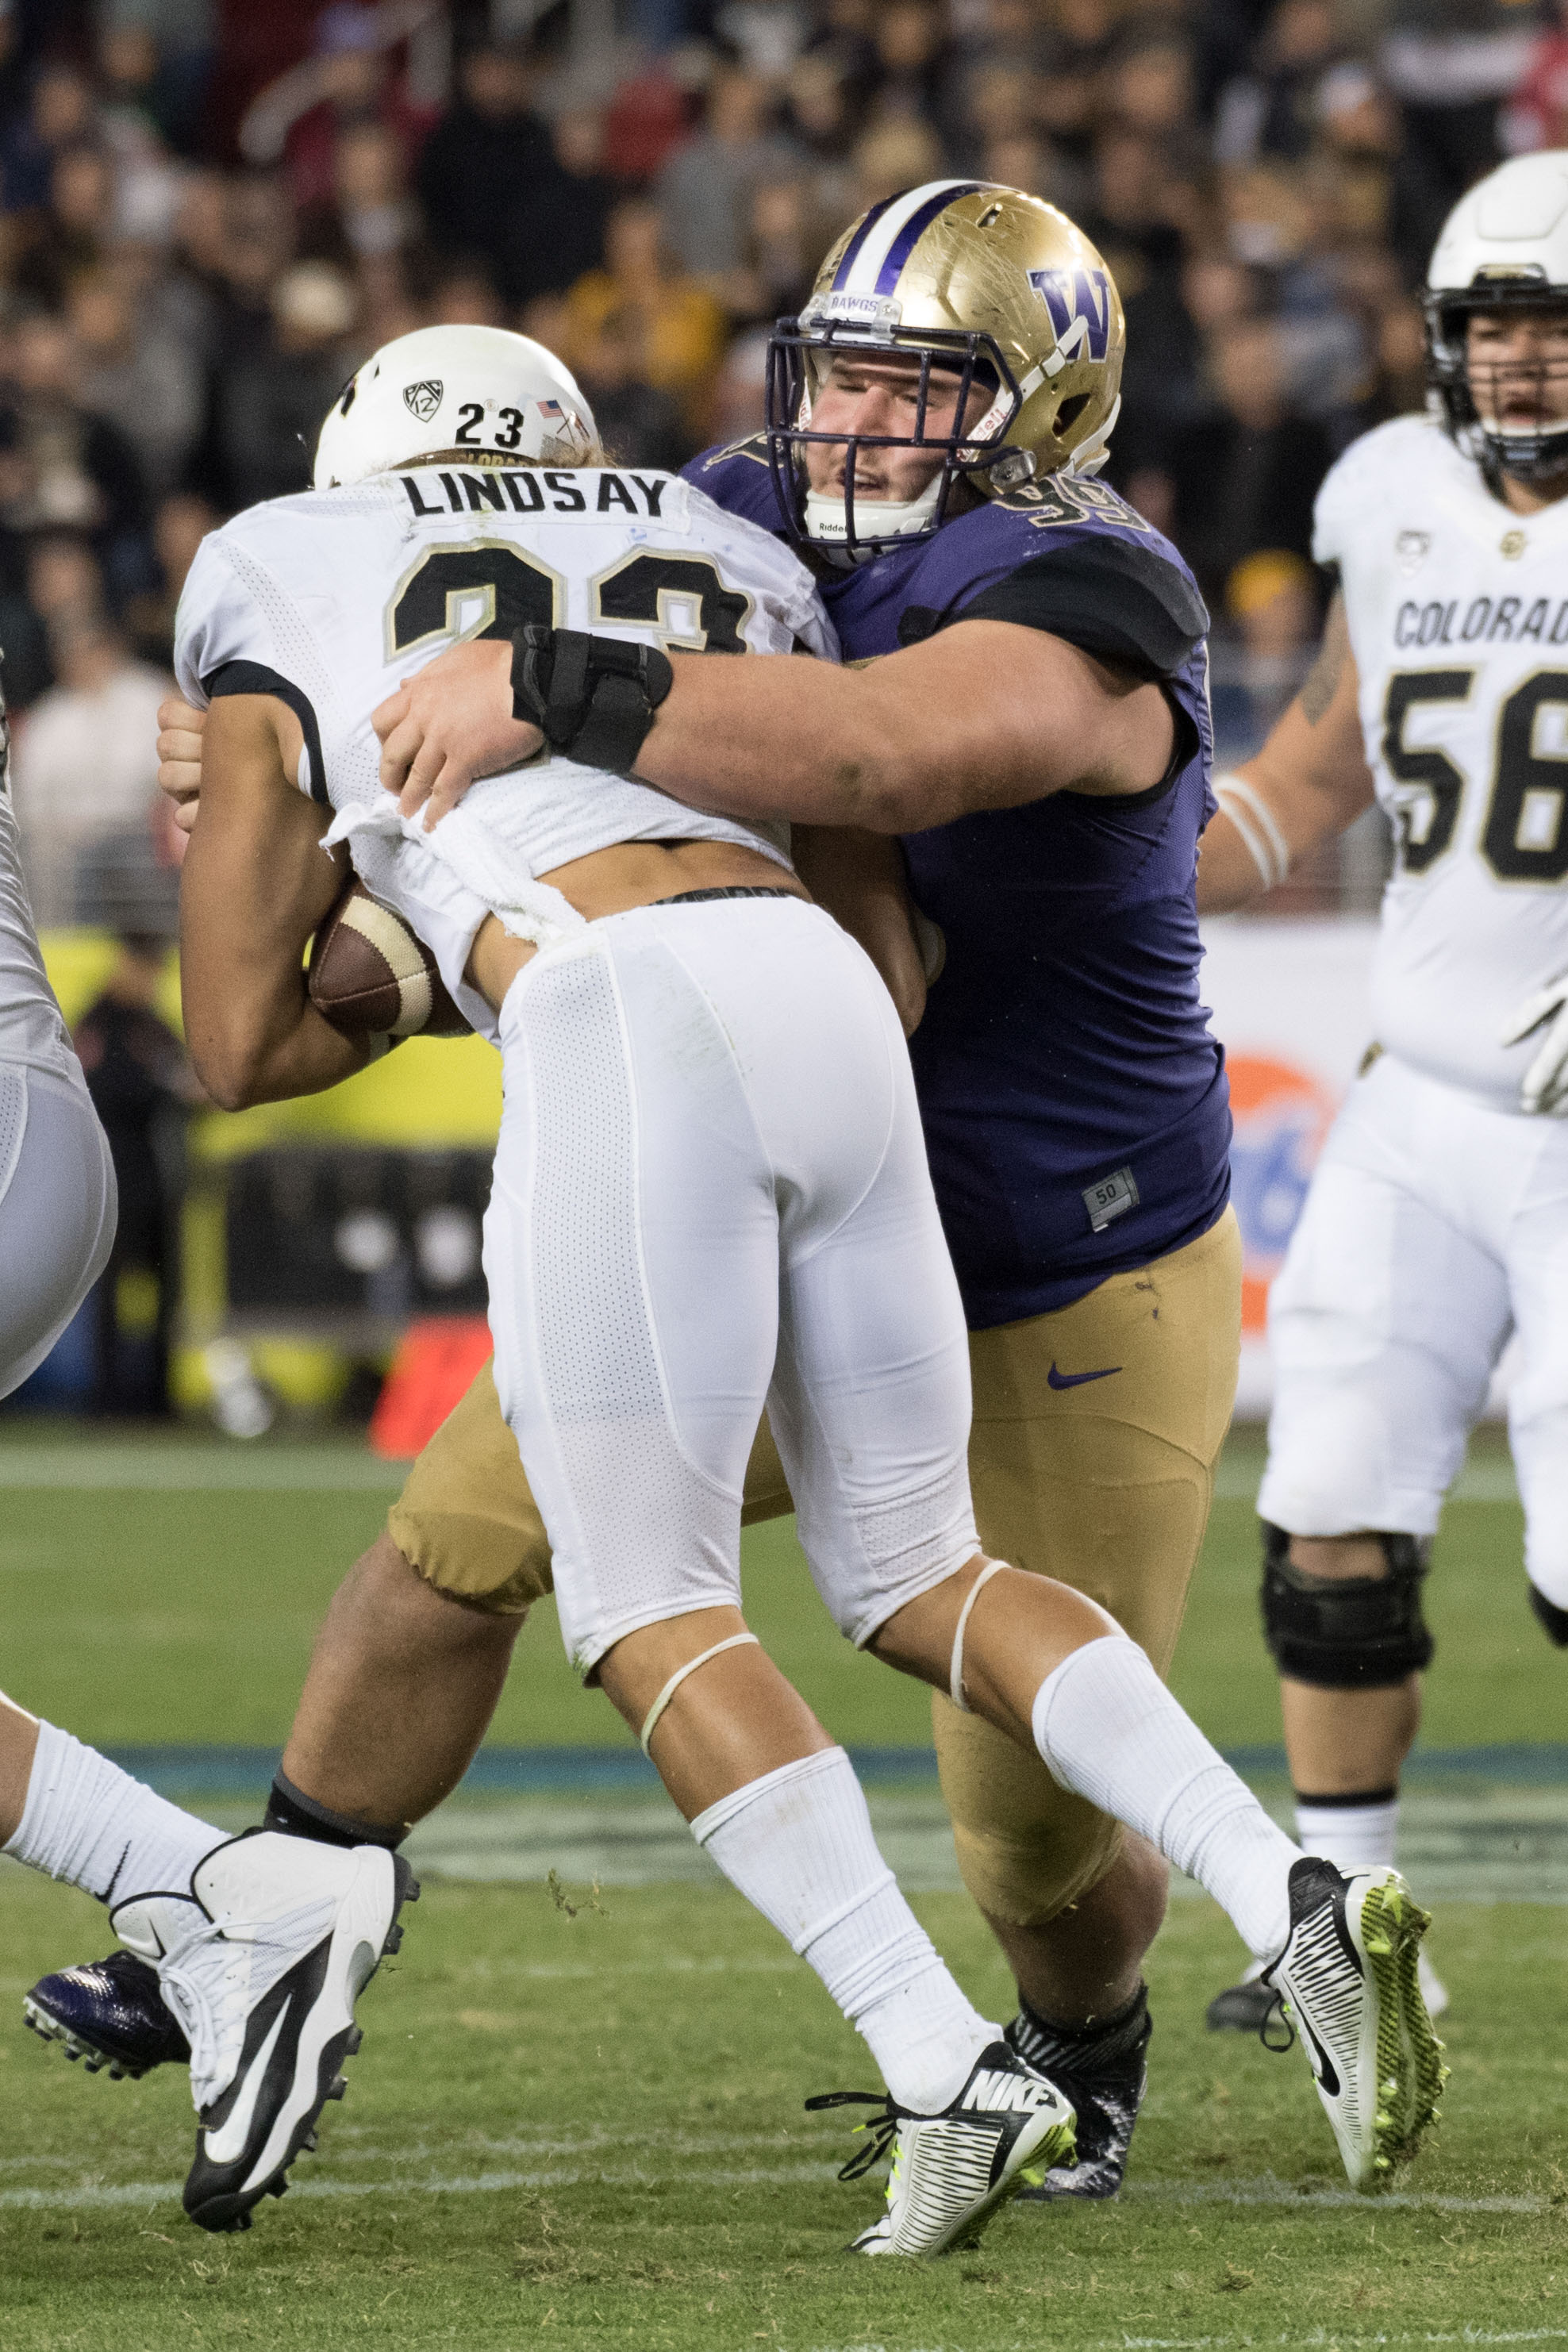 Washington Huskies DT Greg Gaines tackles Colorado Buffaloes RB Phillip Lindsay during the Pac-12 Championship, Dec. 2, 2016.